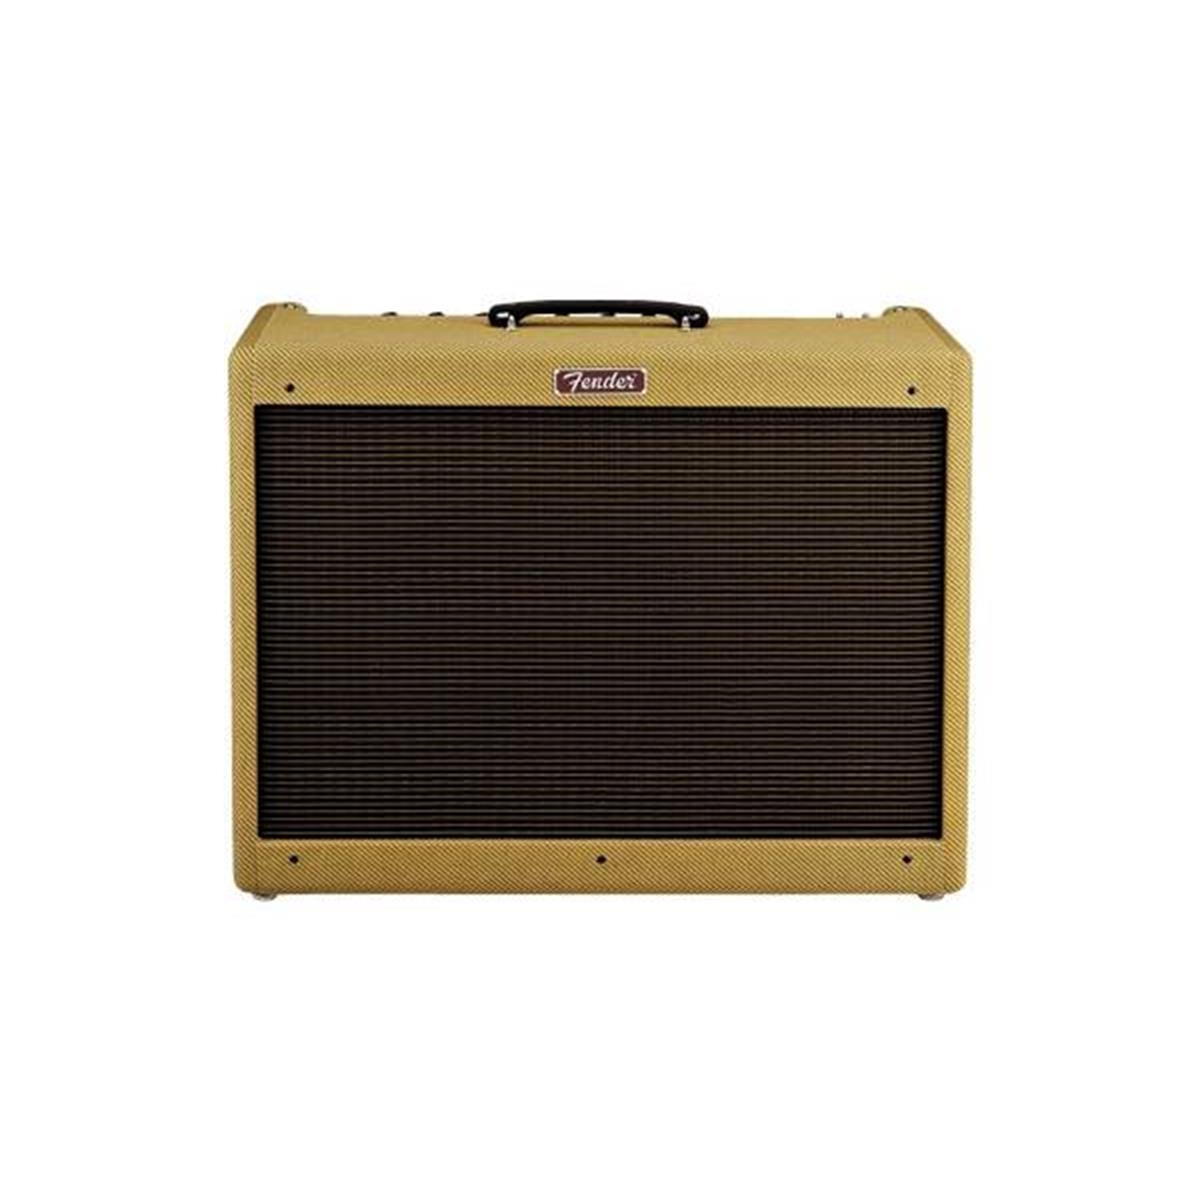 FENDER HOT ROD BLUES DELUXE - 2232206000